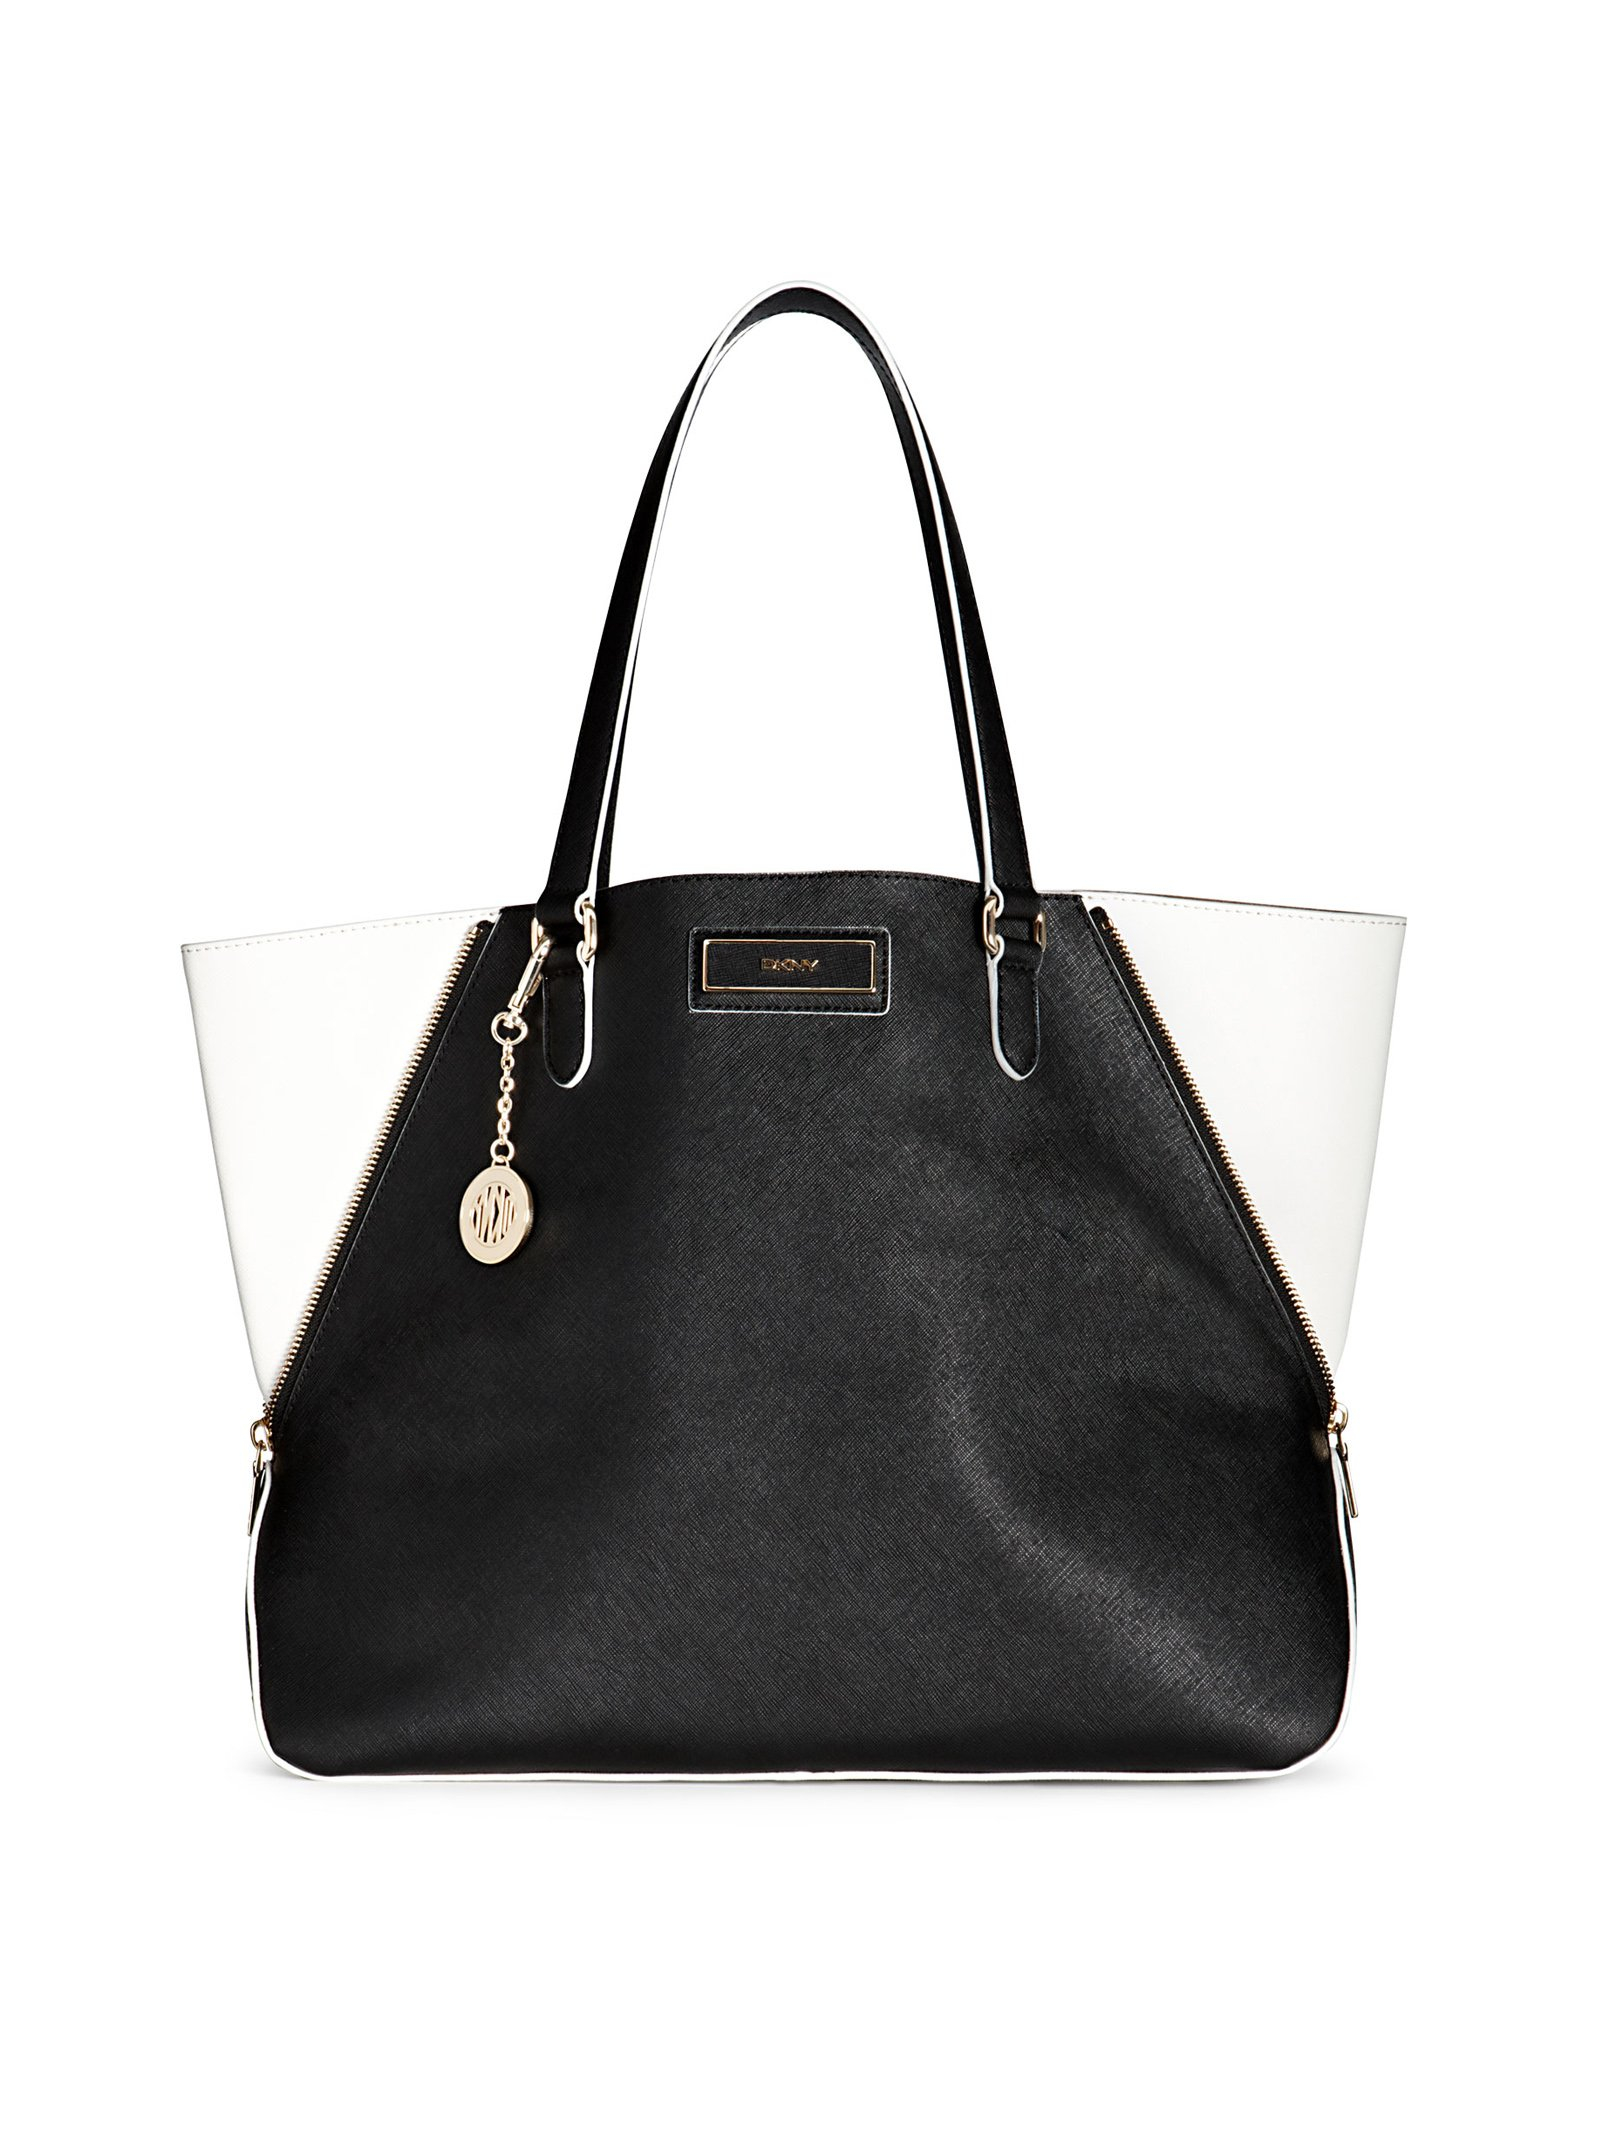 Dkny Saffiano Leather Large Zip Tote in White (BLACK-WHITE